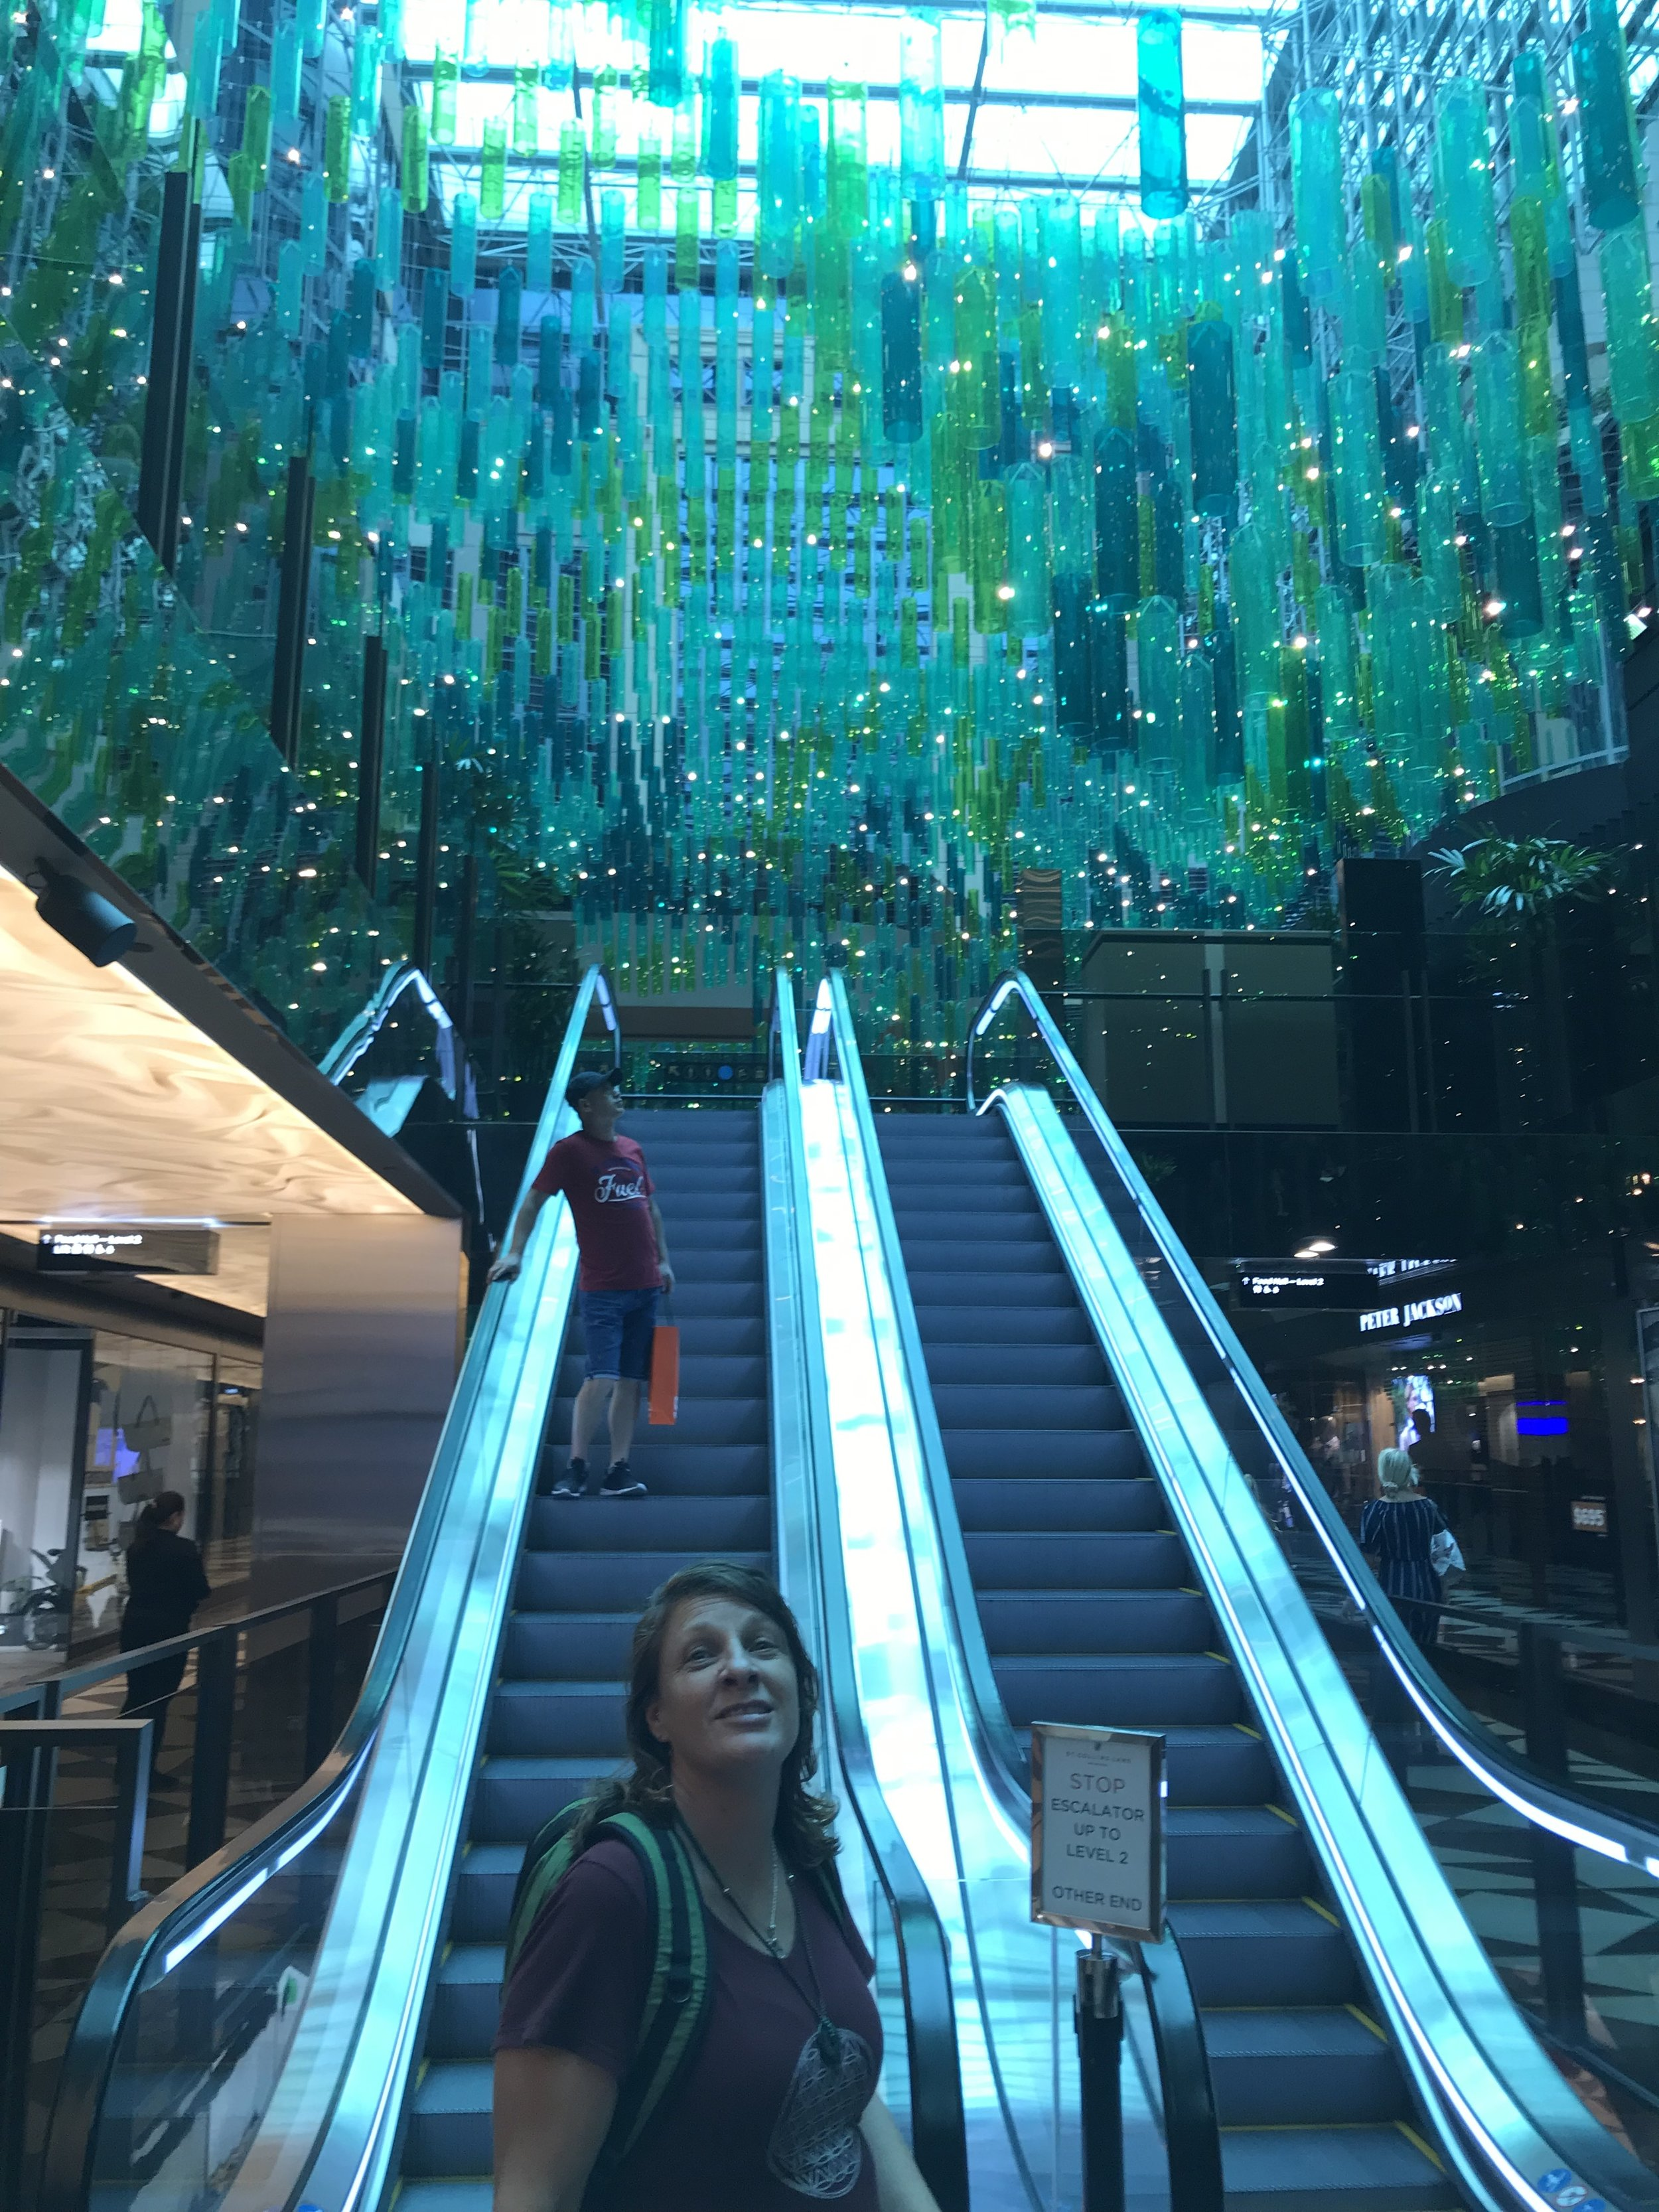 Sandi is in awe of the hanging green bottles in Collins Arcade.